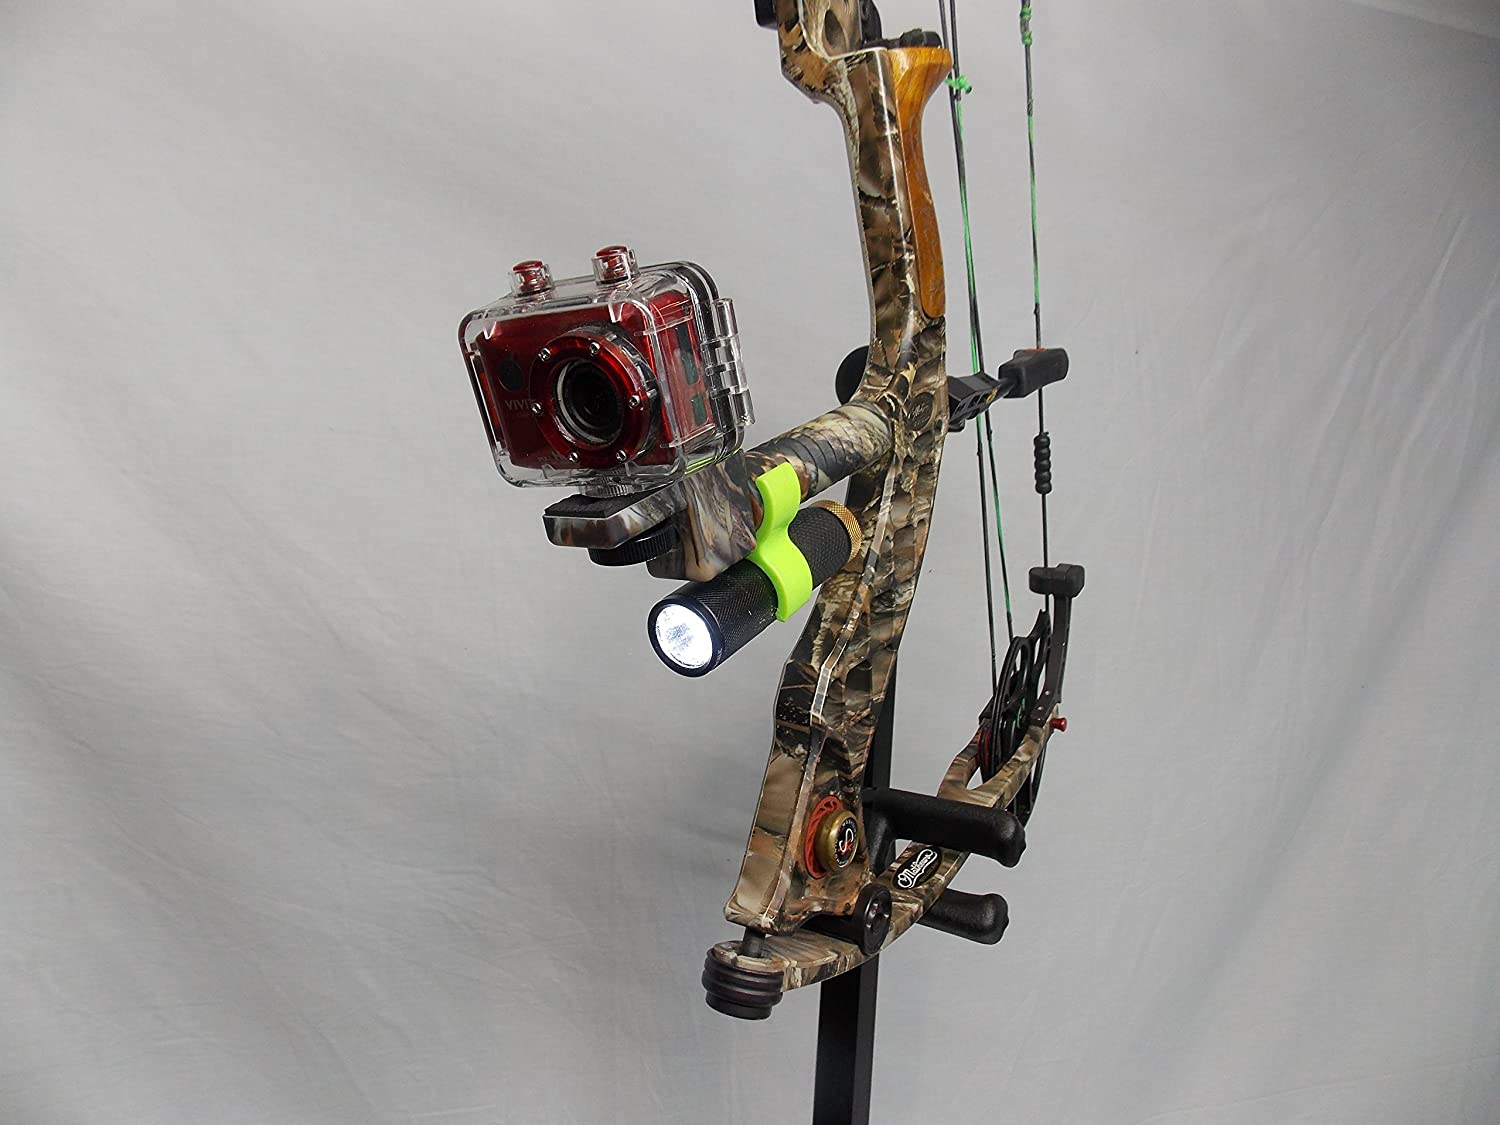 Archery; Attach Smartphone GoPro Lg Android Black Standard Camera iPhone Samsung Htc Motorola High Point Products Bow Camera Mount and Stabilizer; For Hunting Nexus